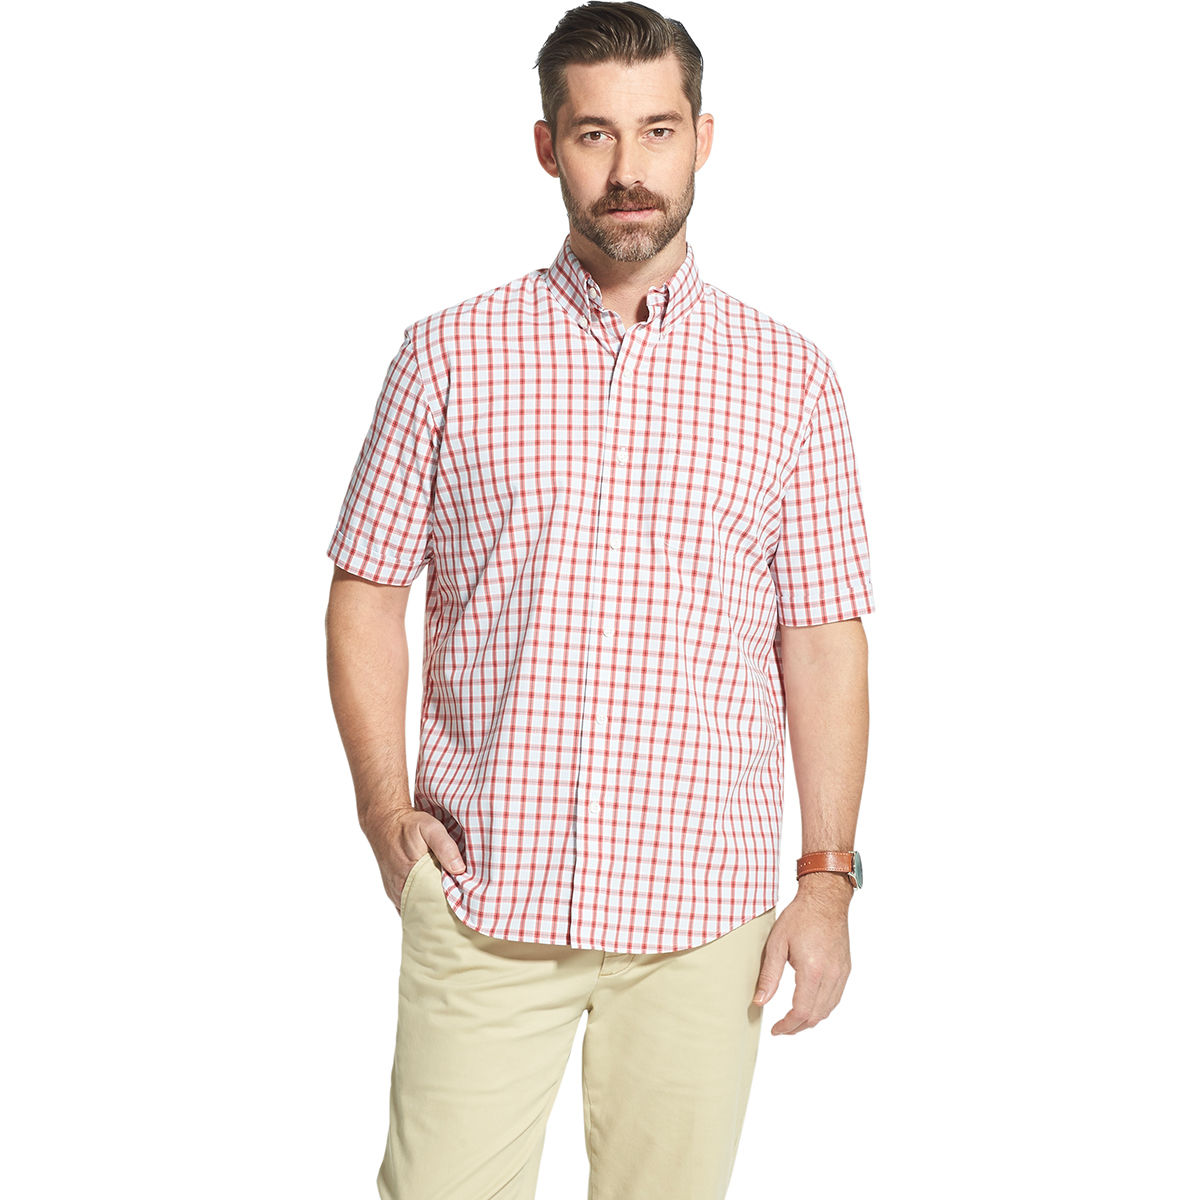 Arrow Men's Hamilton Short-Sleeve Button Down Shirt - Red, L